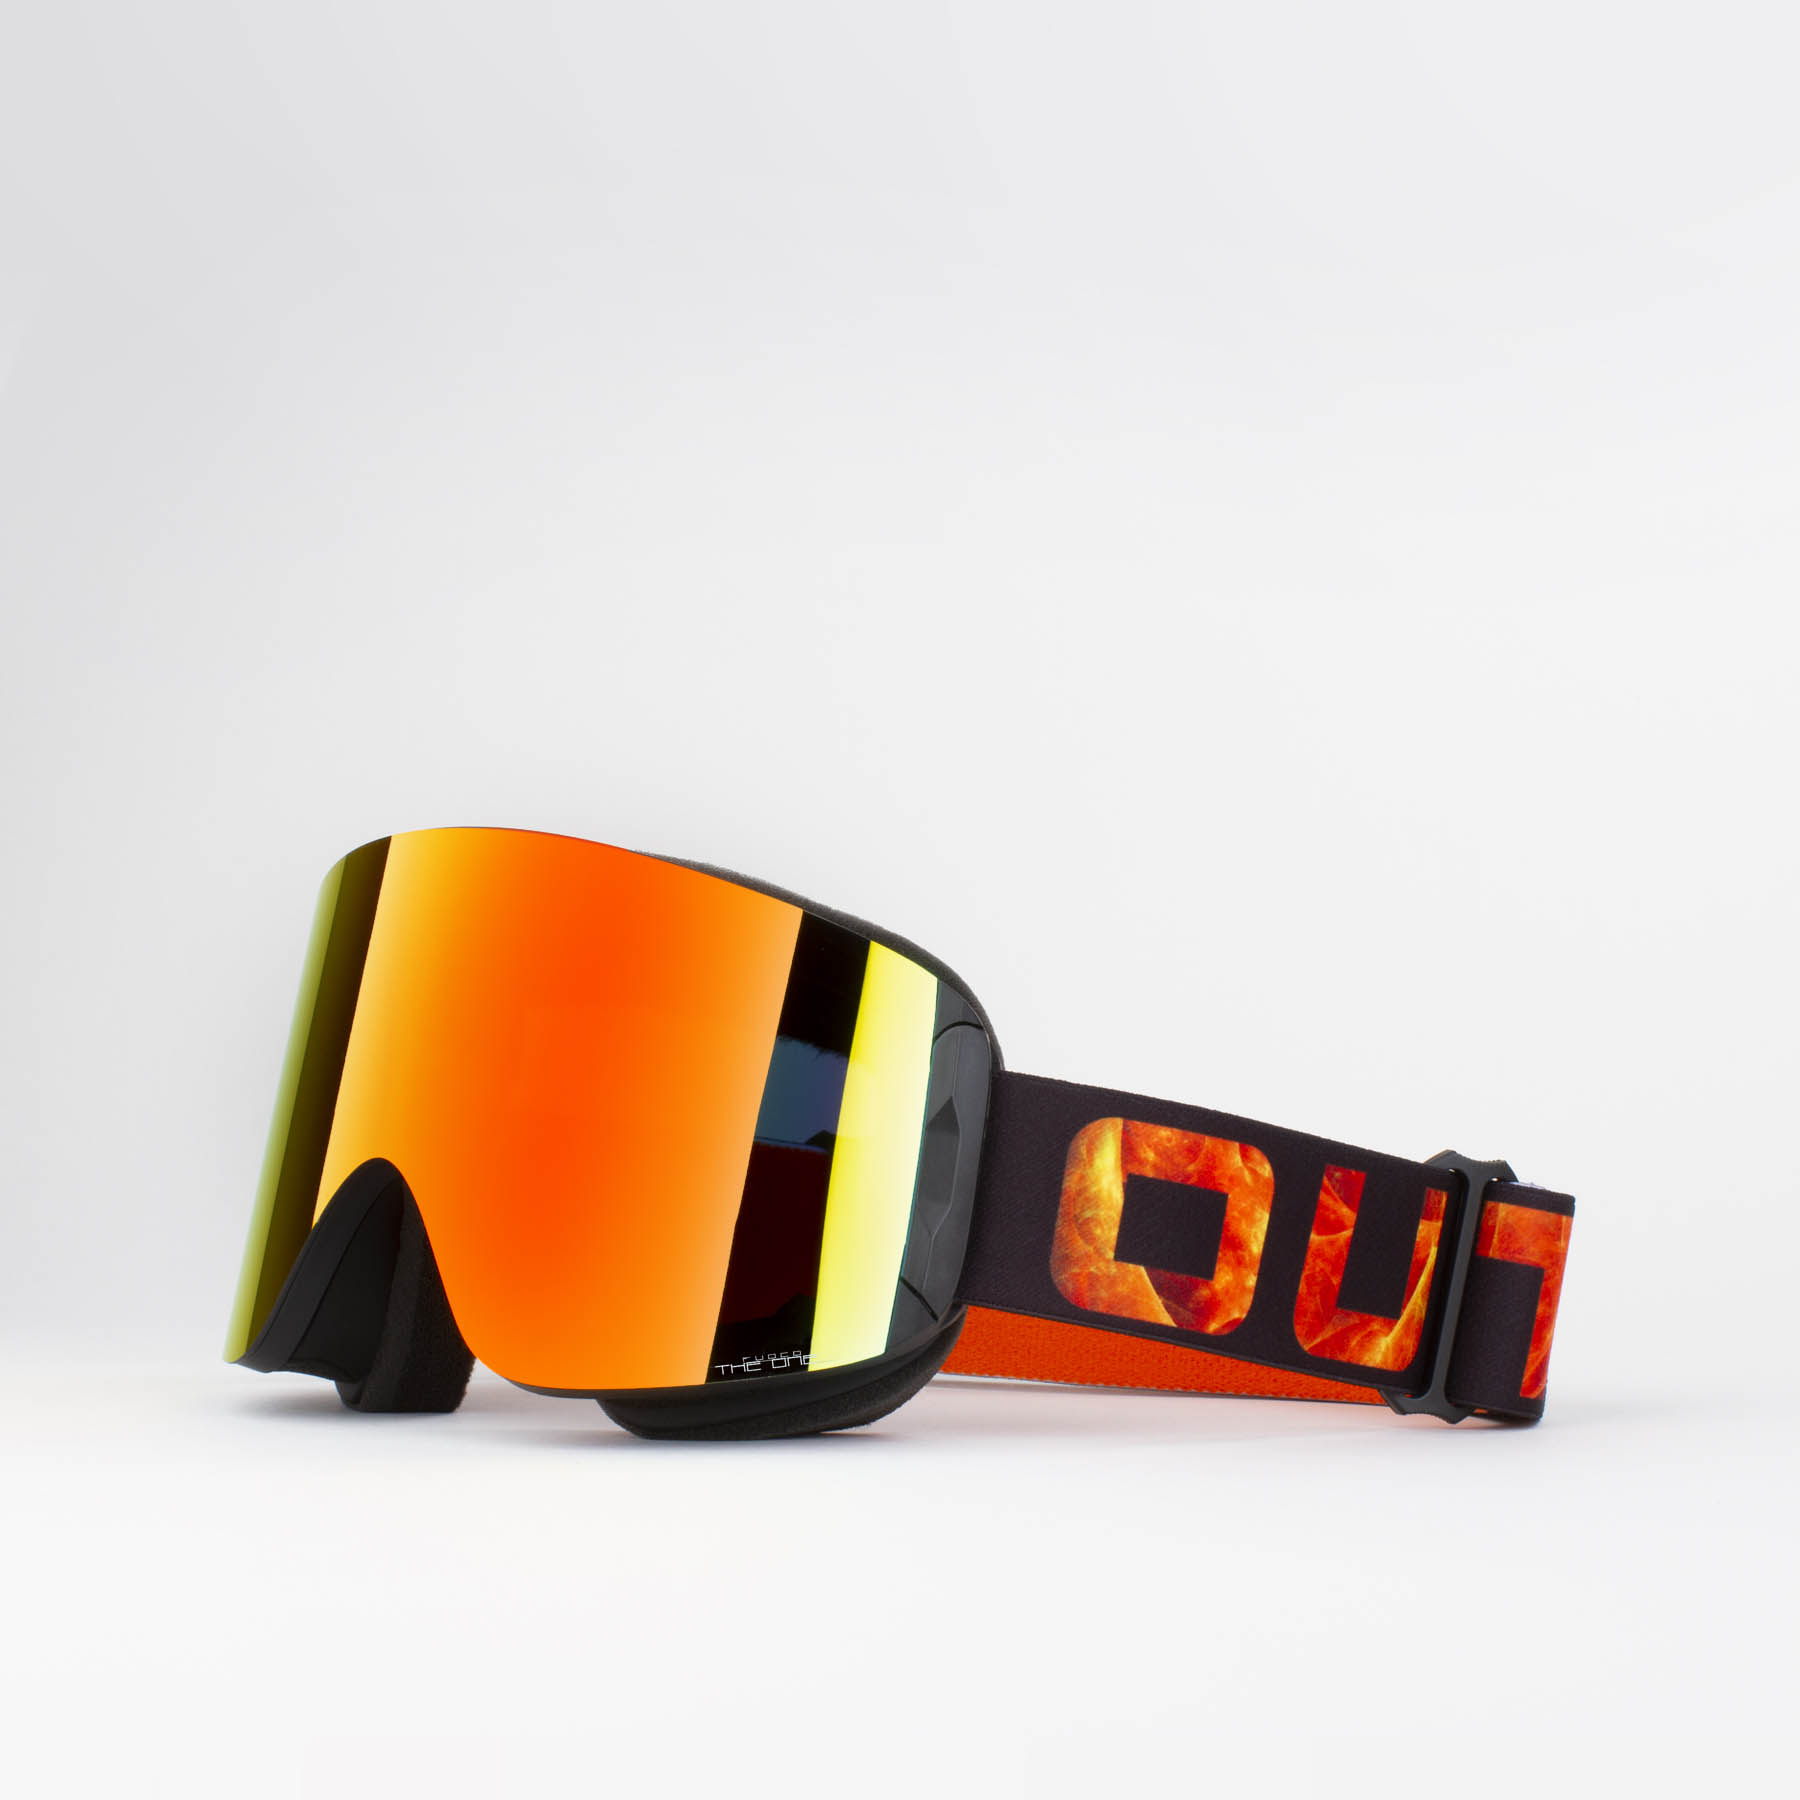 Katana Vulcano The One Fuoco goggle